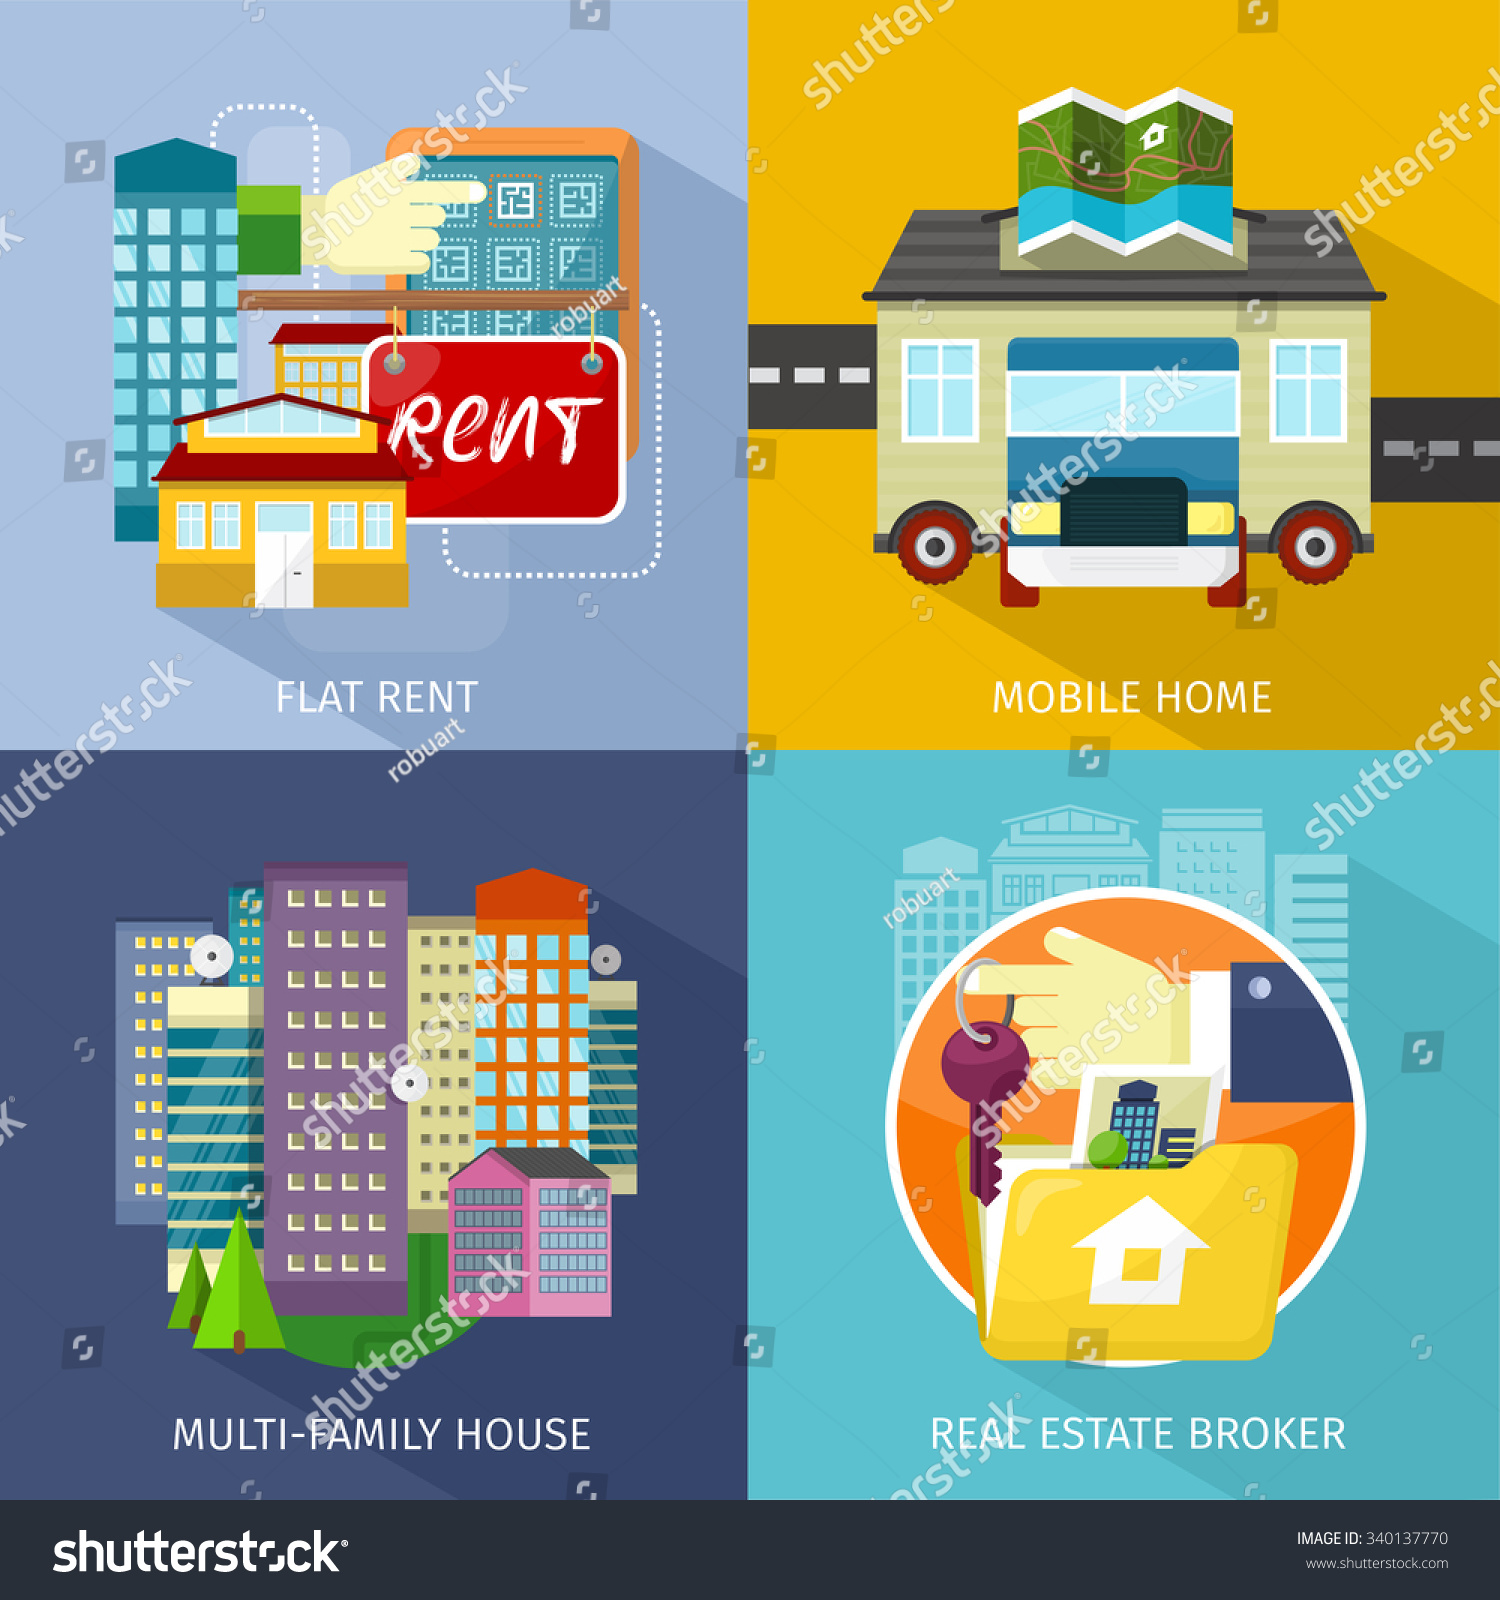 multifamily house mobile home flat rent stock vector 340137770 multi family house mobile home flat rent rental estate broker mobile